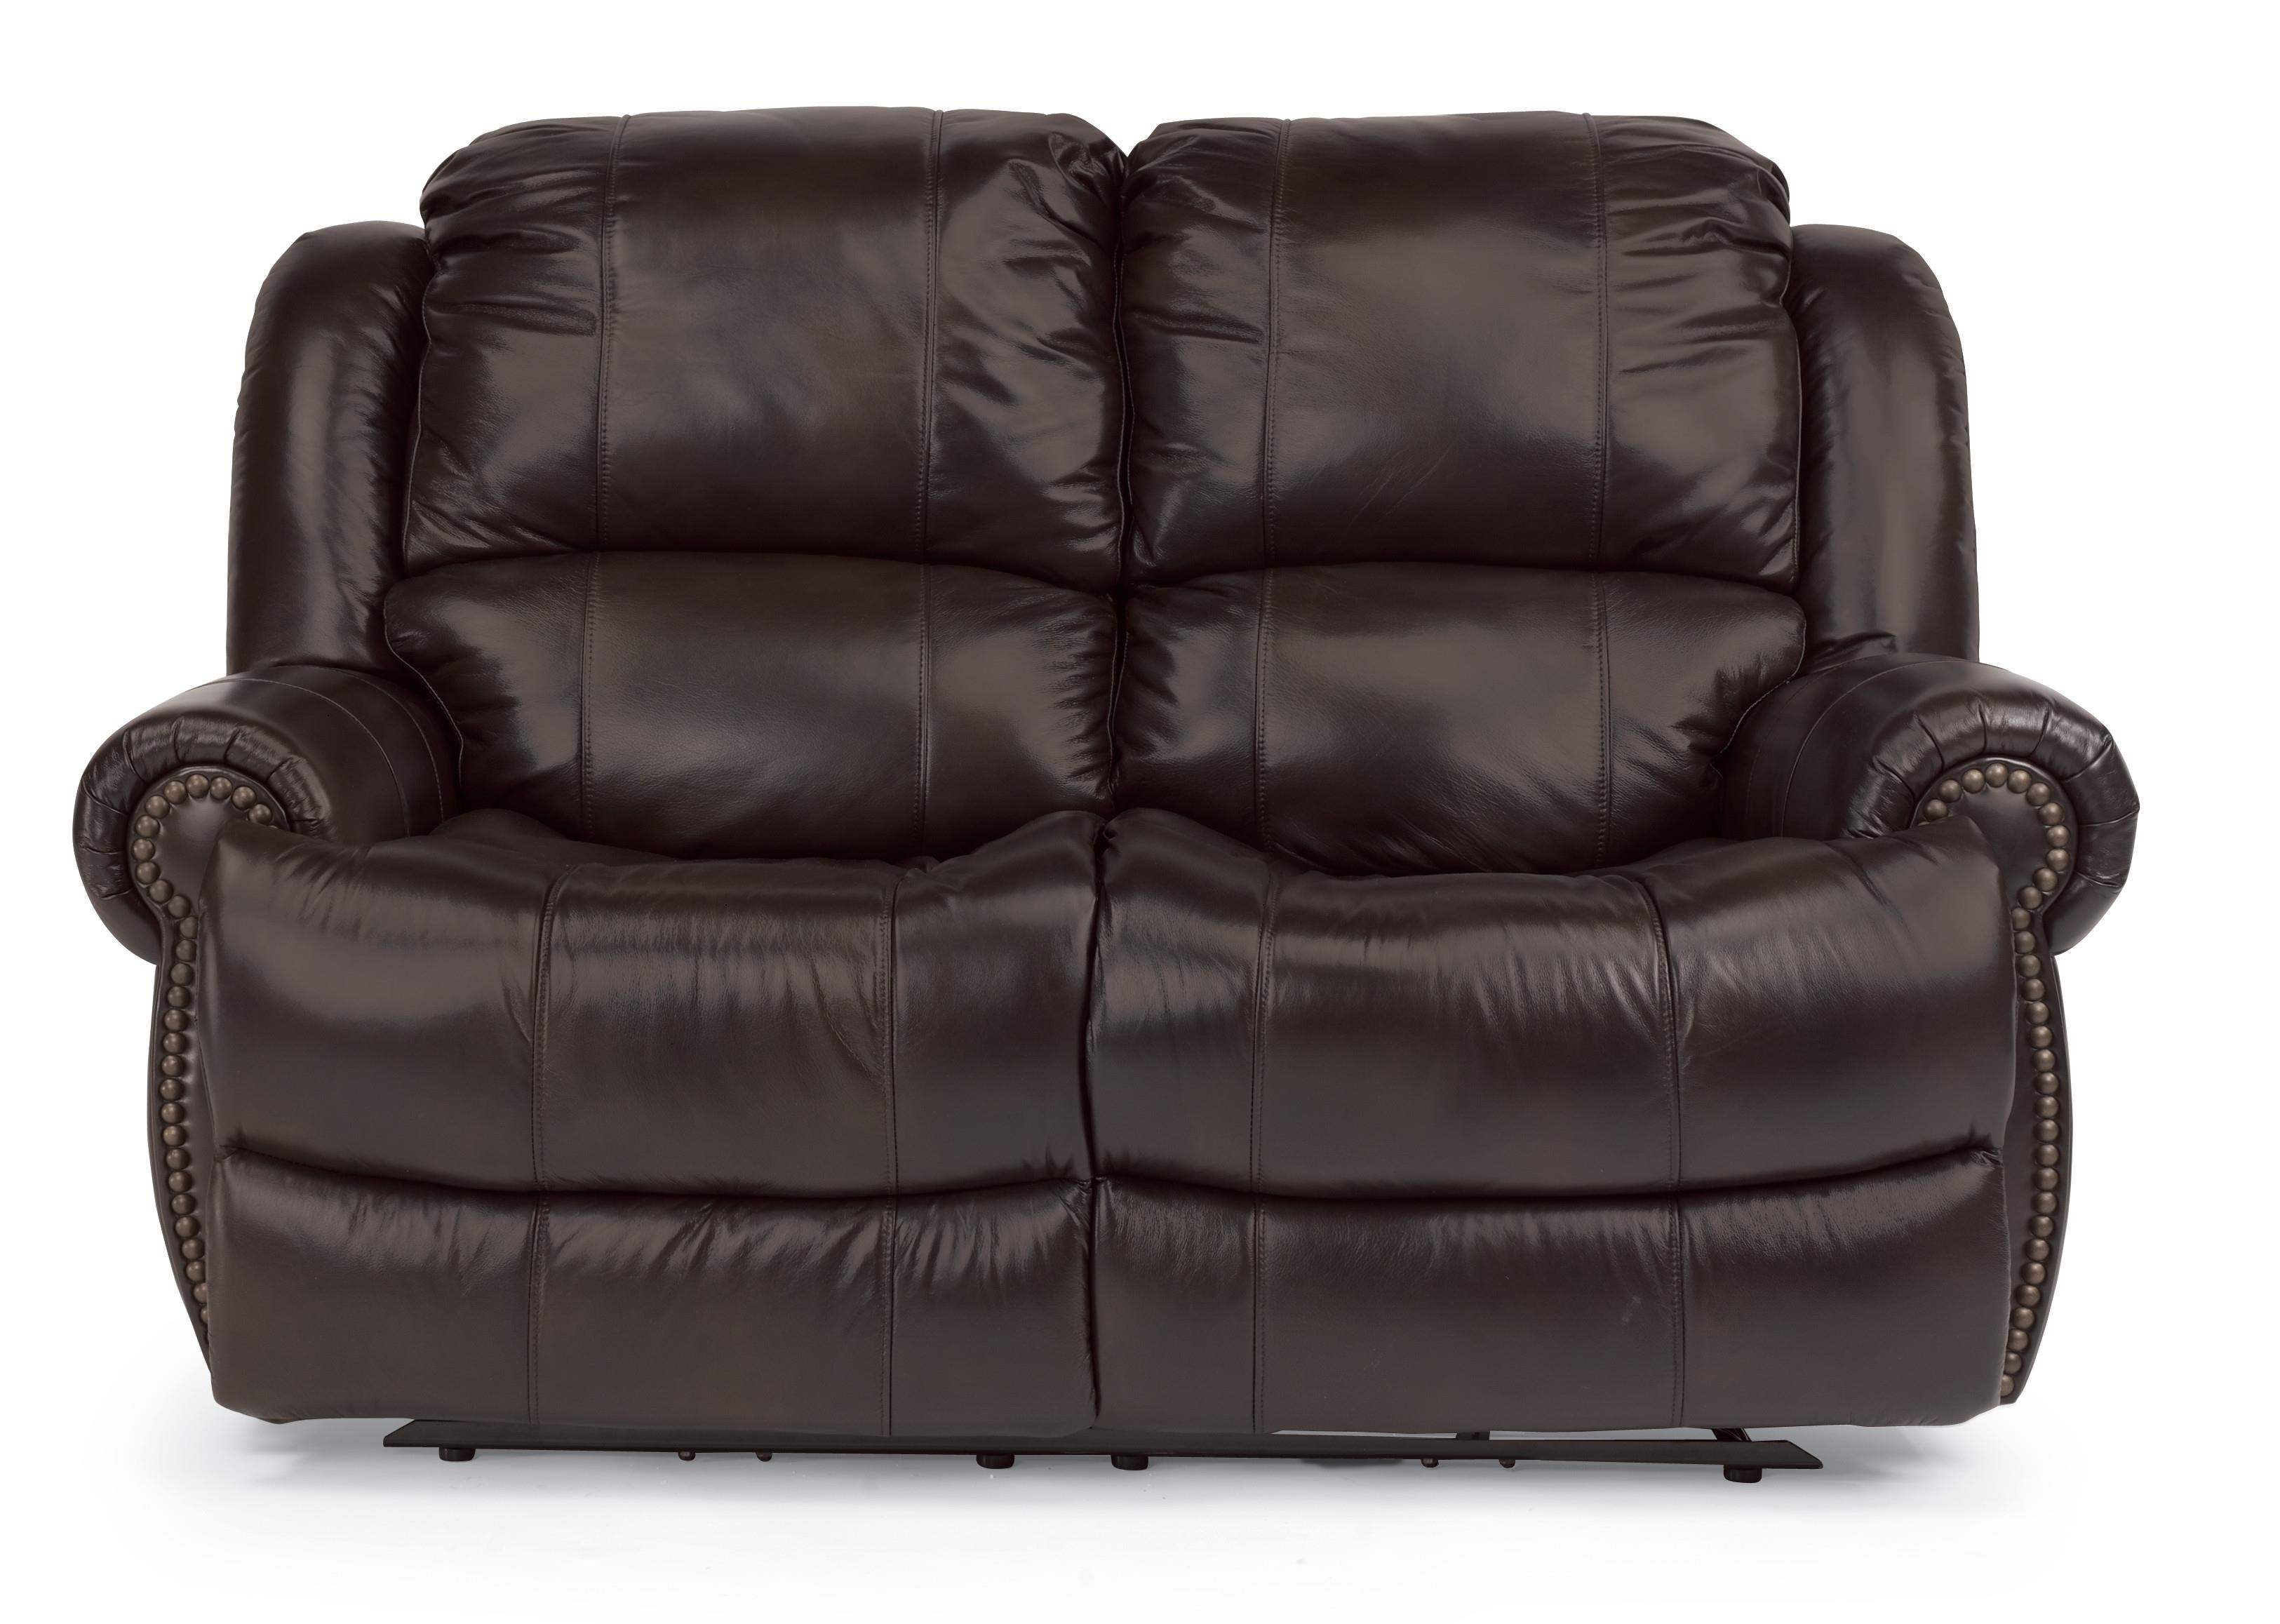 Flexsteel Latitudes - Capitol Power Reclining Loveseat - Item Number: 1311-60P